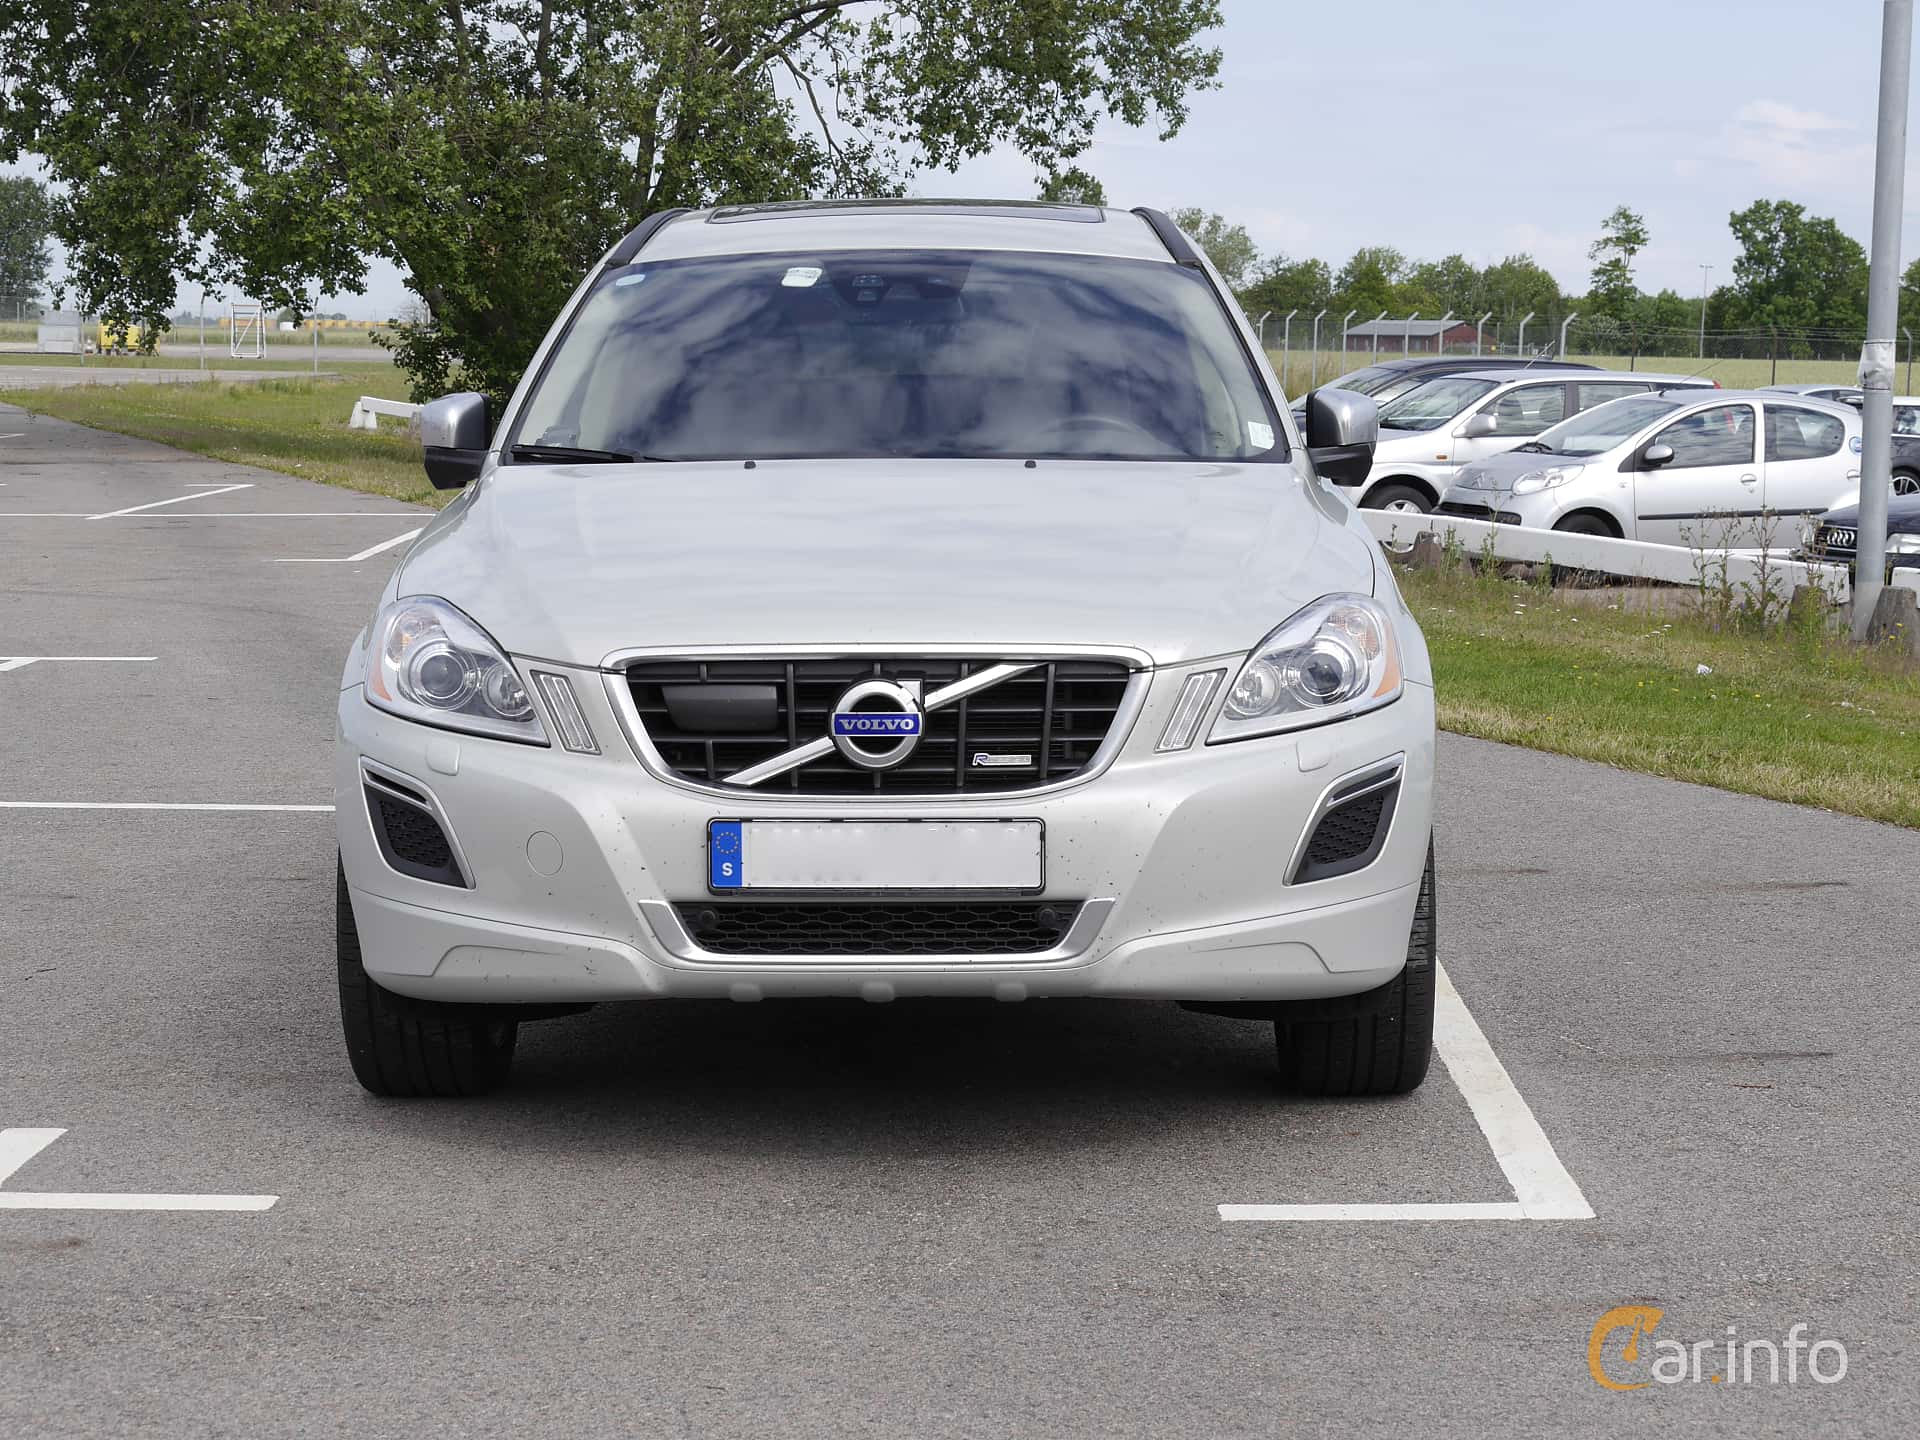 Volvo XC60 D5 AWD Geartronic, 215hp, 2012